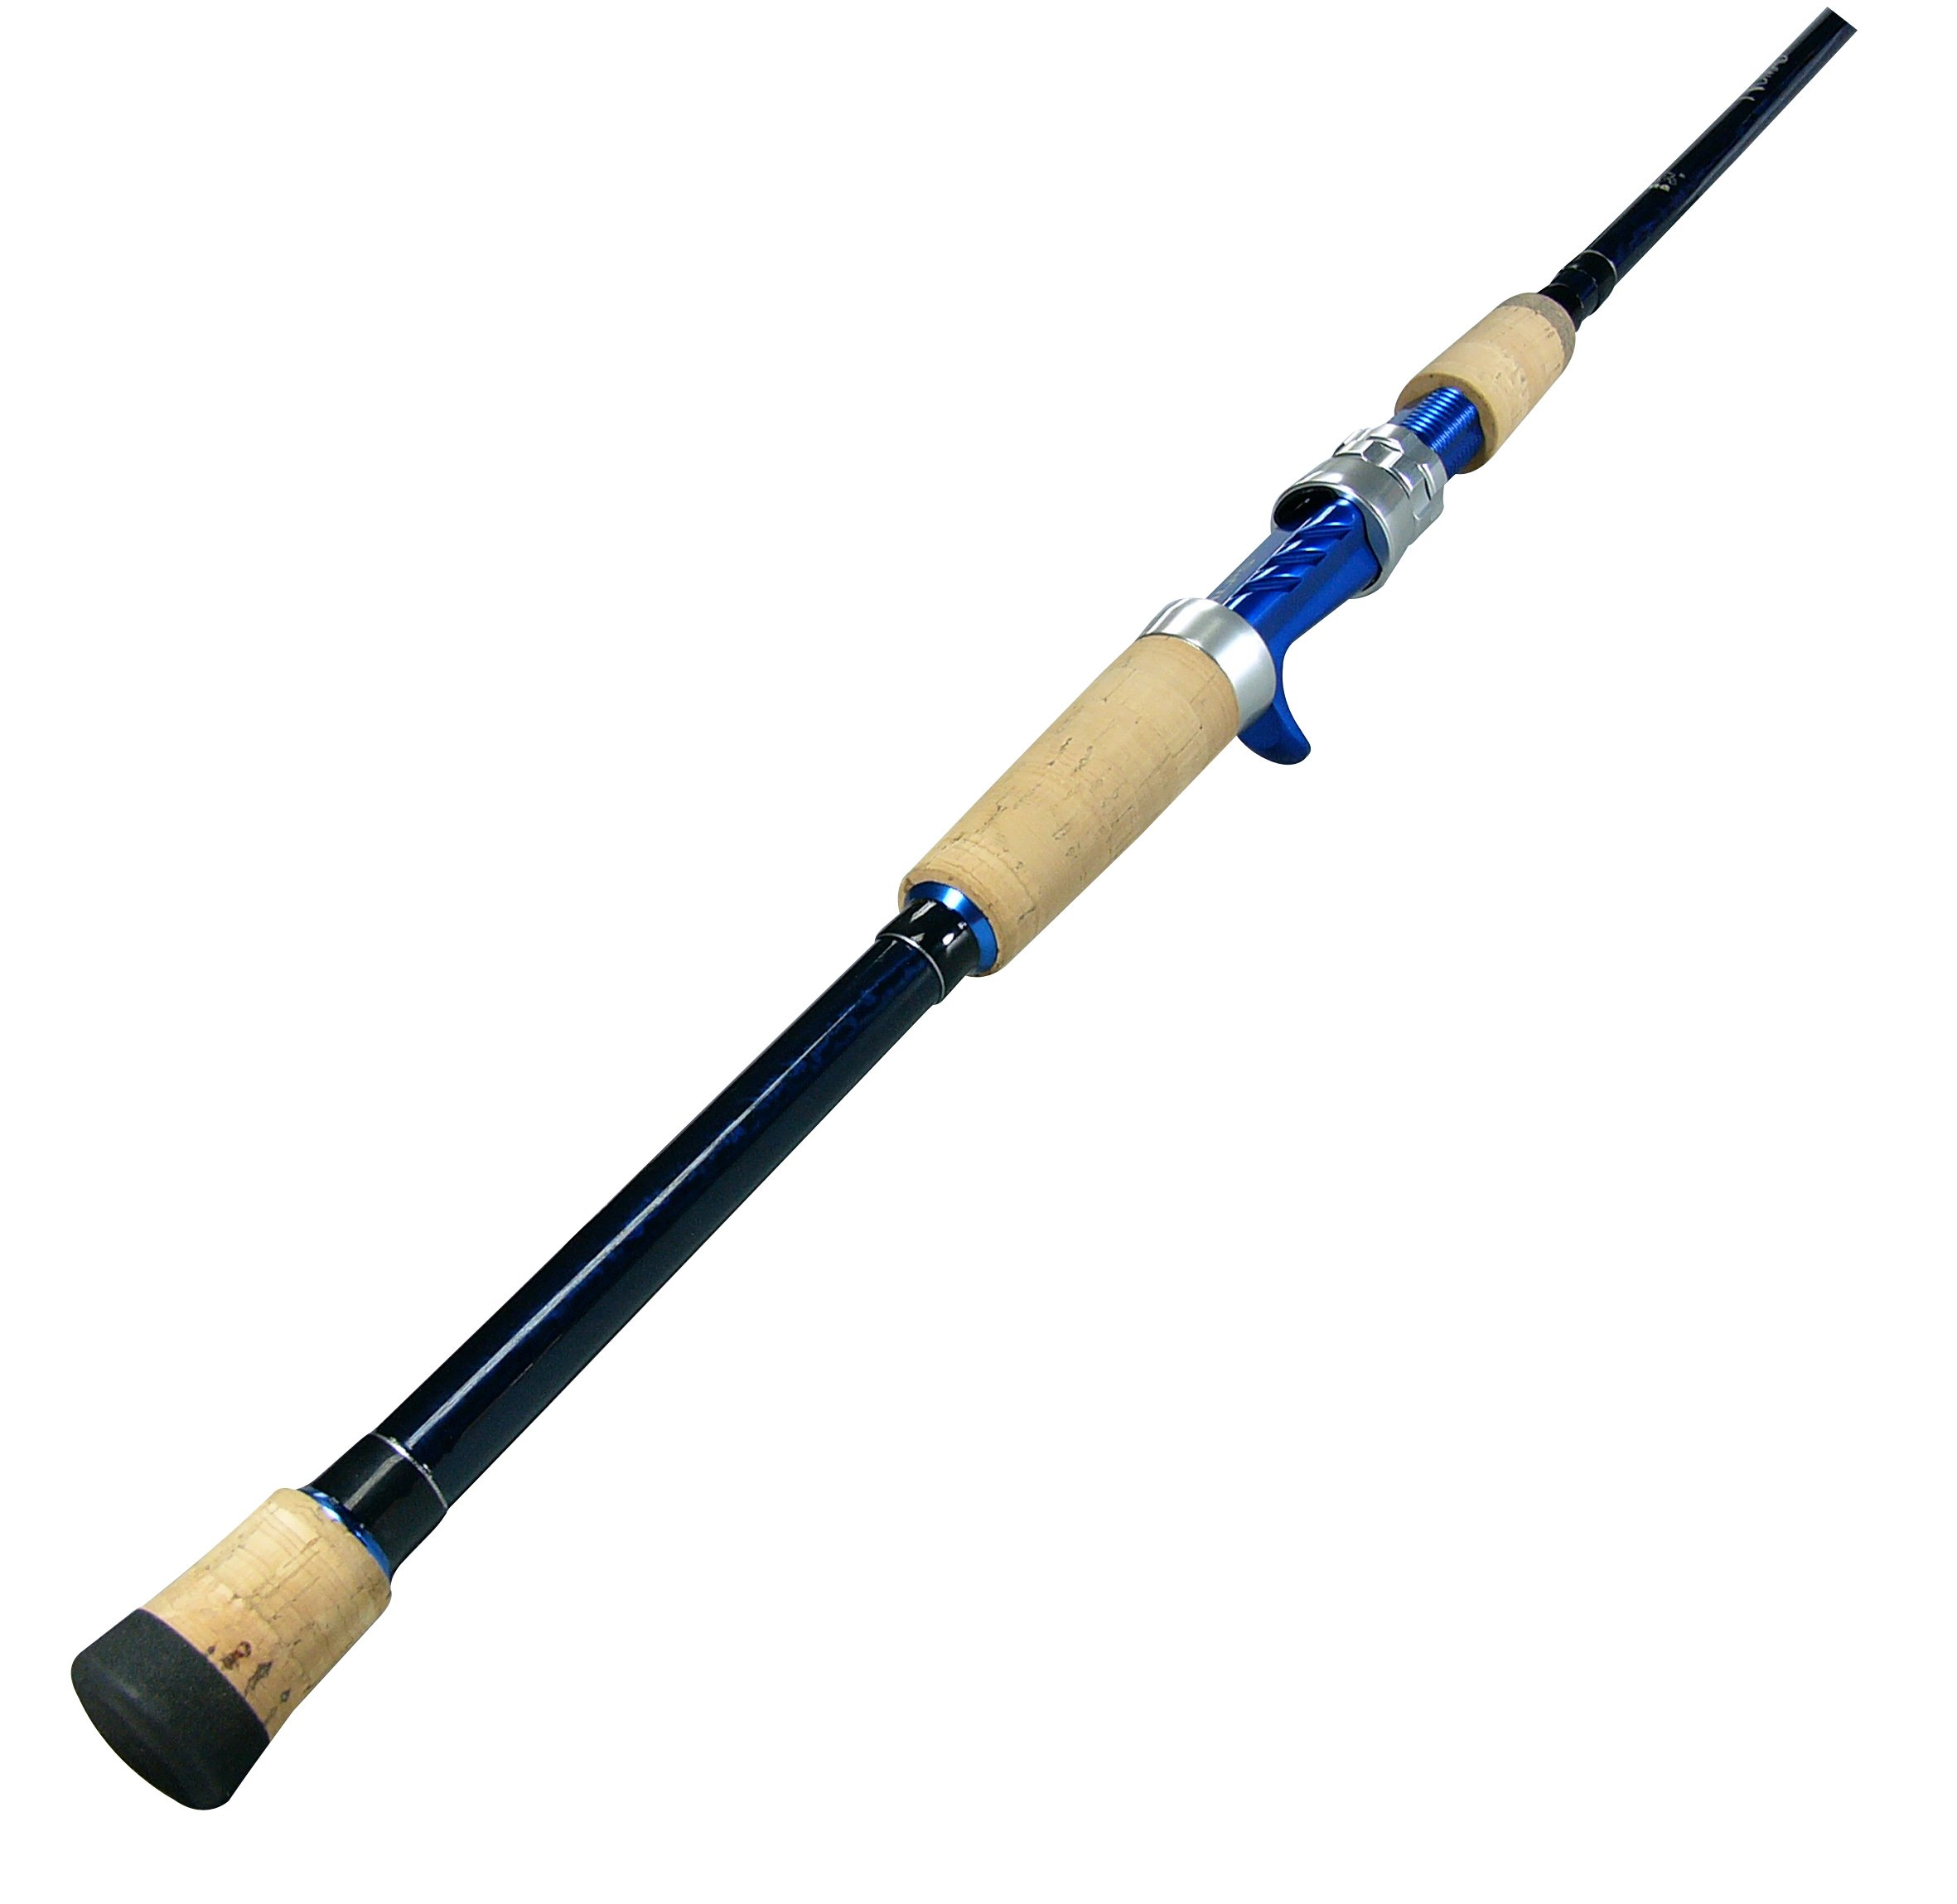 Okuma's Nomad Inshore Saltwater Multi Action Travel Rods-NTi-C-703M-MH  (Blue/Black, 7-Feet) by Okuma